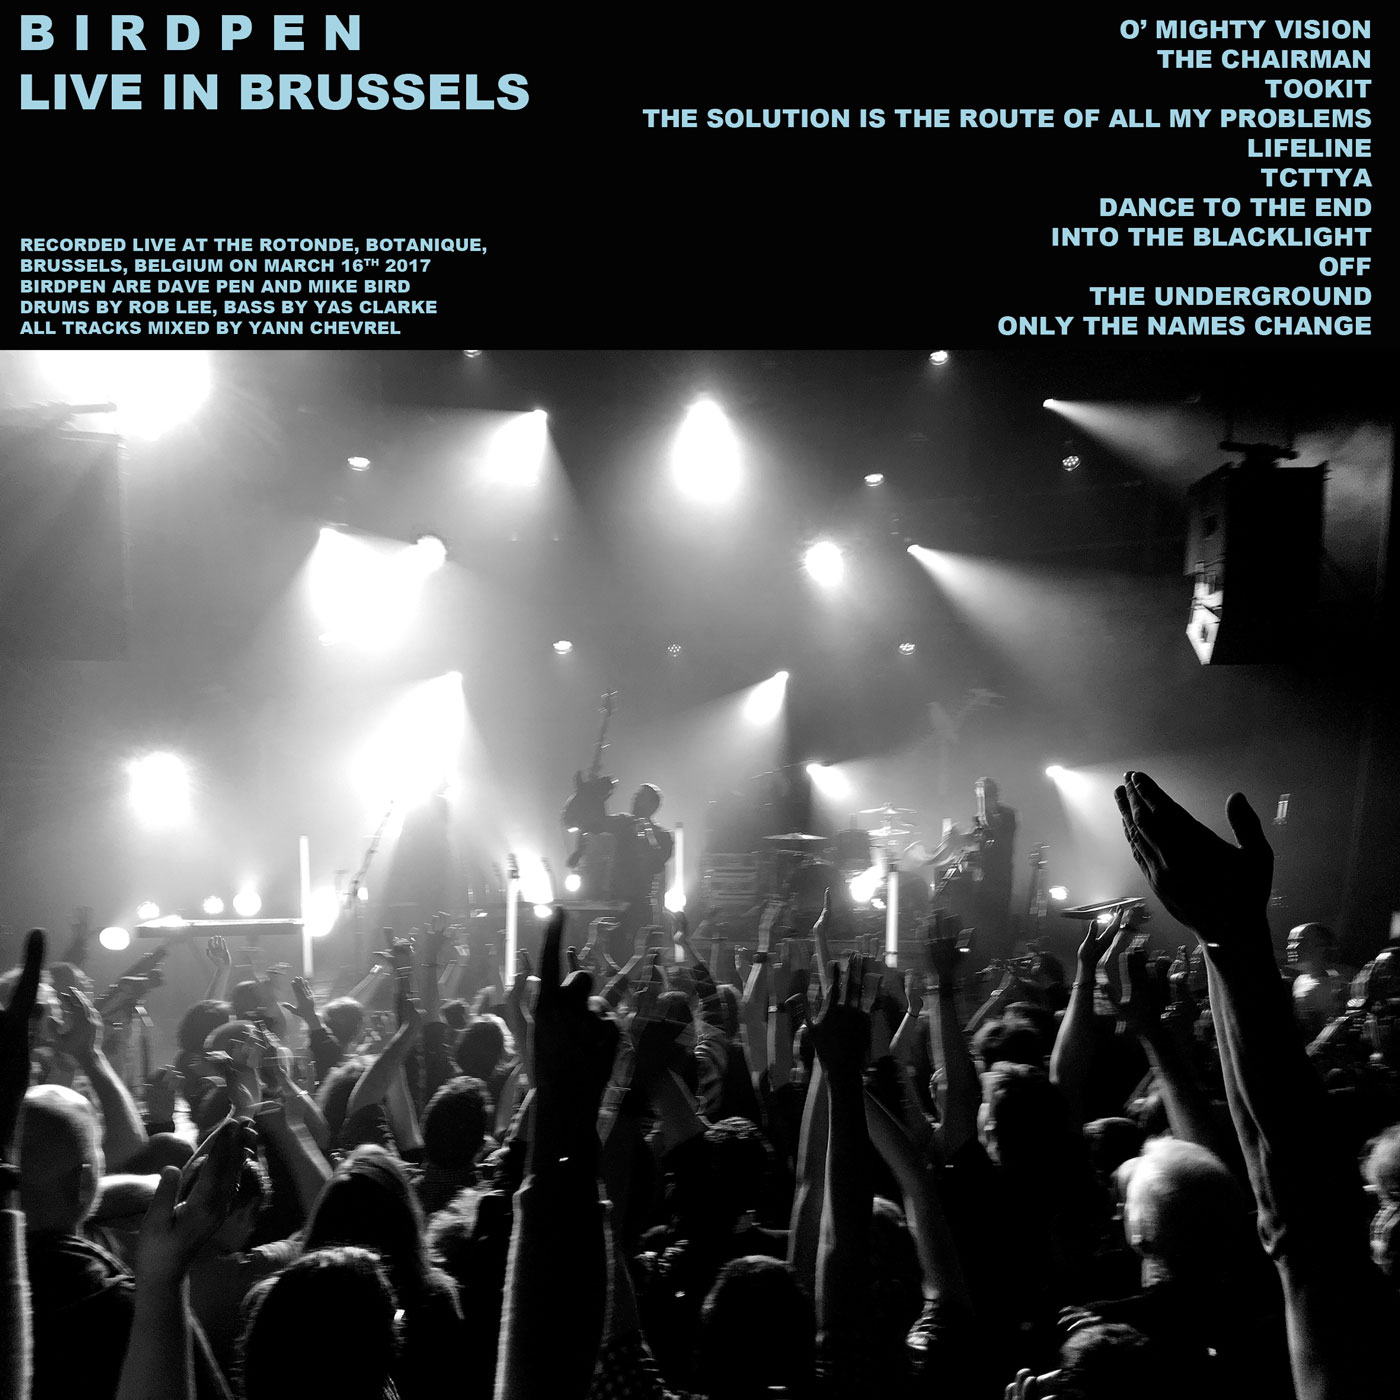 Buy Online Birdpen - Live in Brussels Digital Album